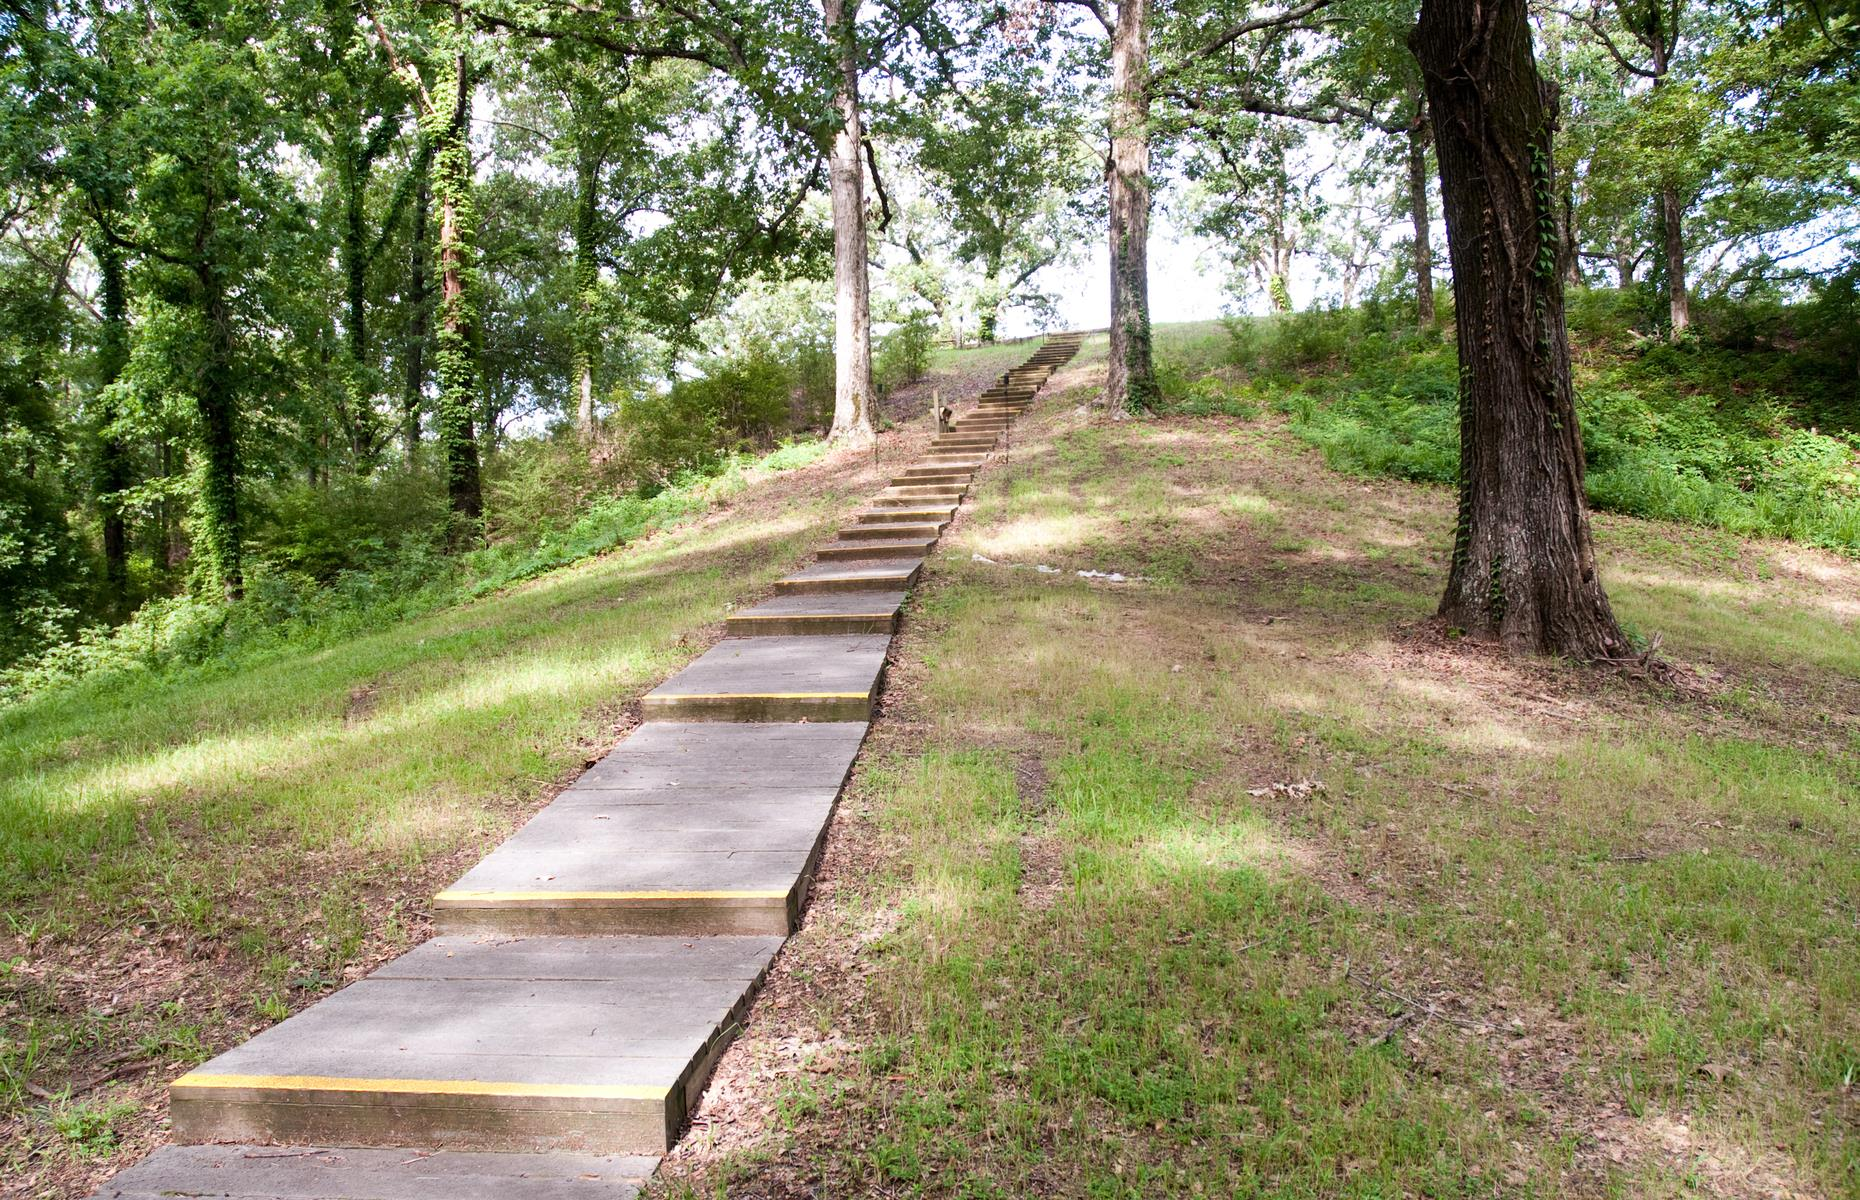 Slide 23 of 27: The earthen mounds at and around Poverty Point dwarf most others in size and also age – the nearby Lower Jackson Mound has been dated to about 3900 BC. It's thought that the impressive mounds and concentric half-circles here were shaped by hand too.